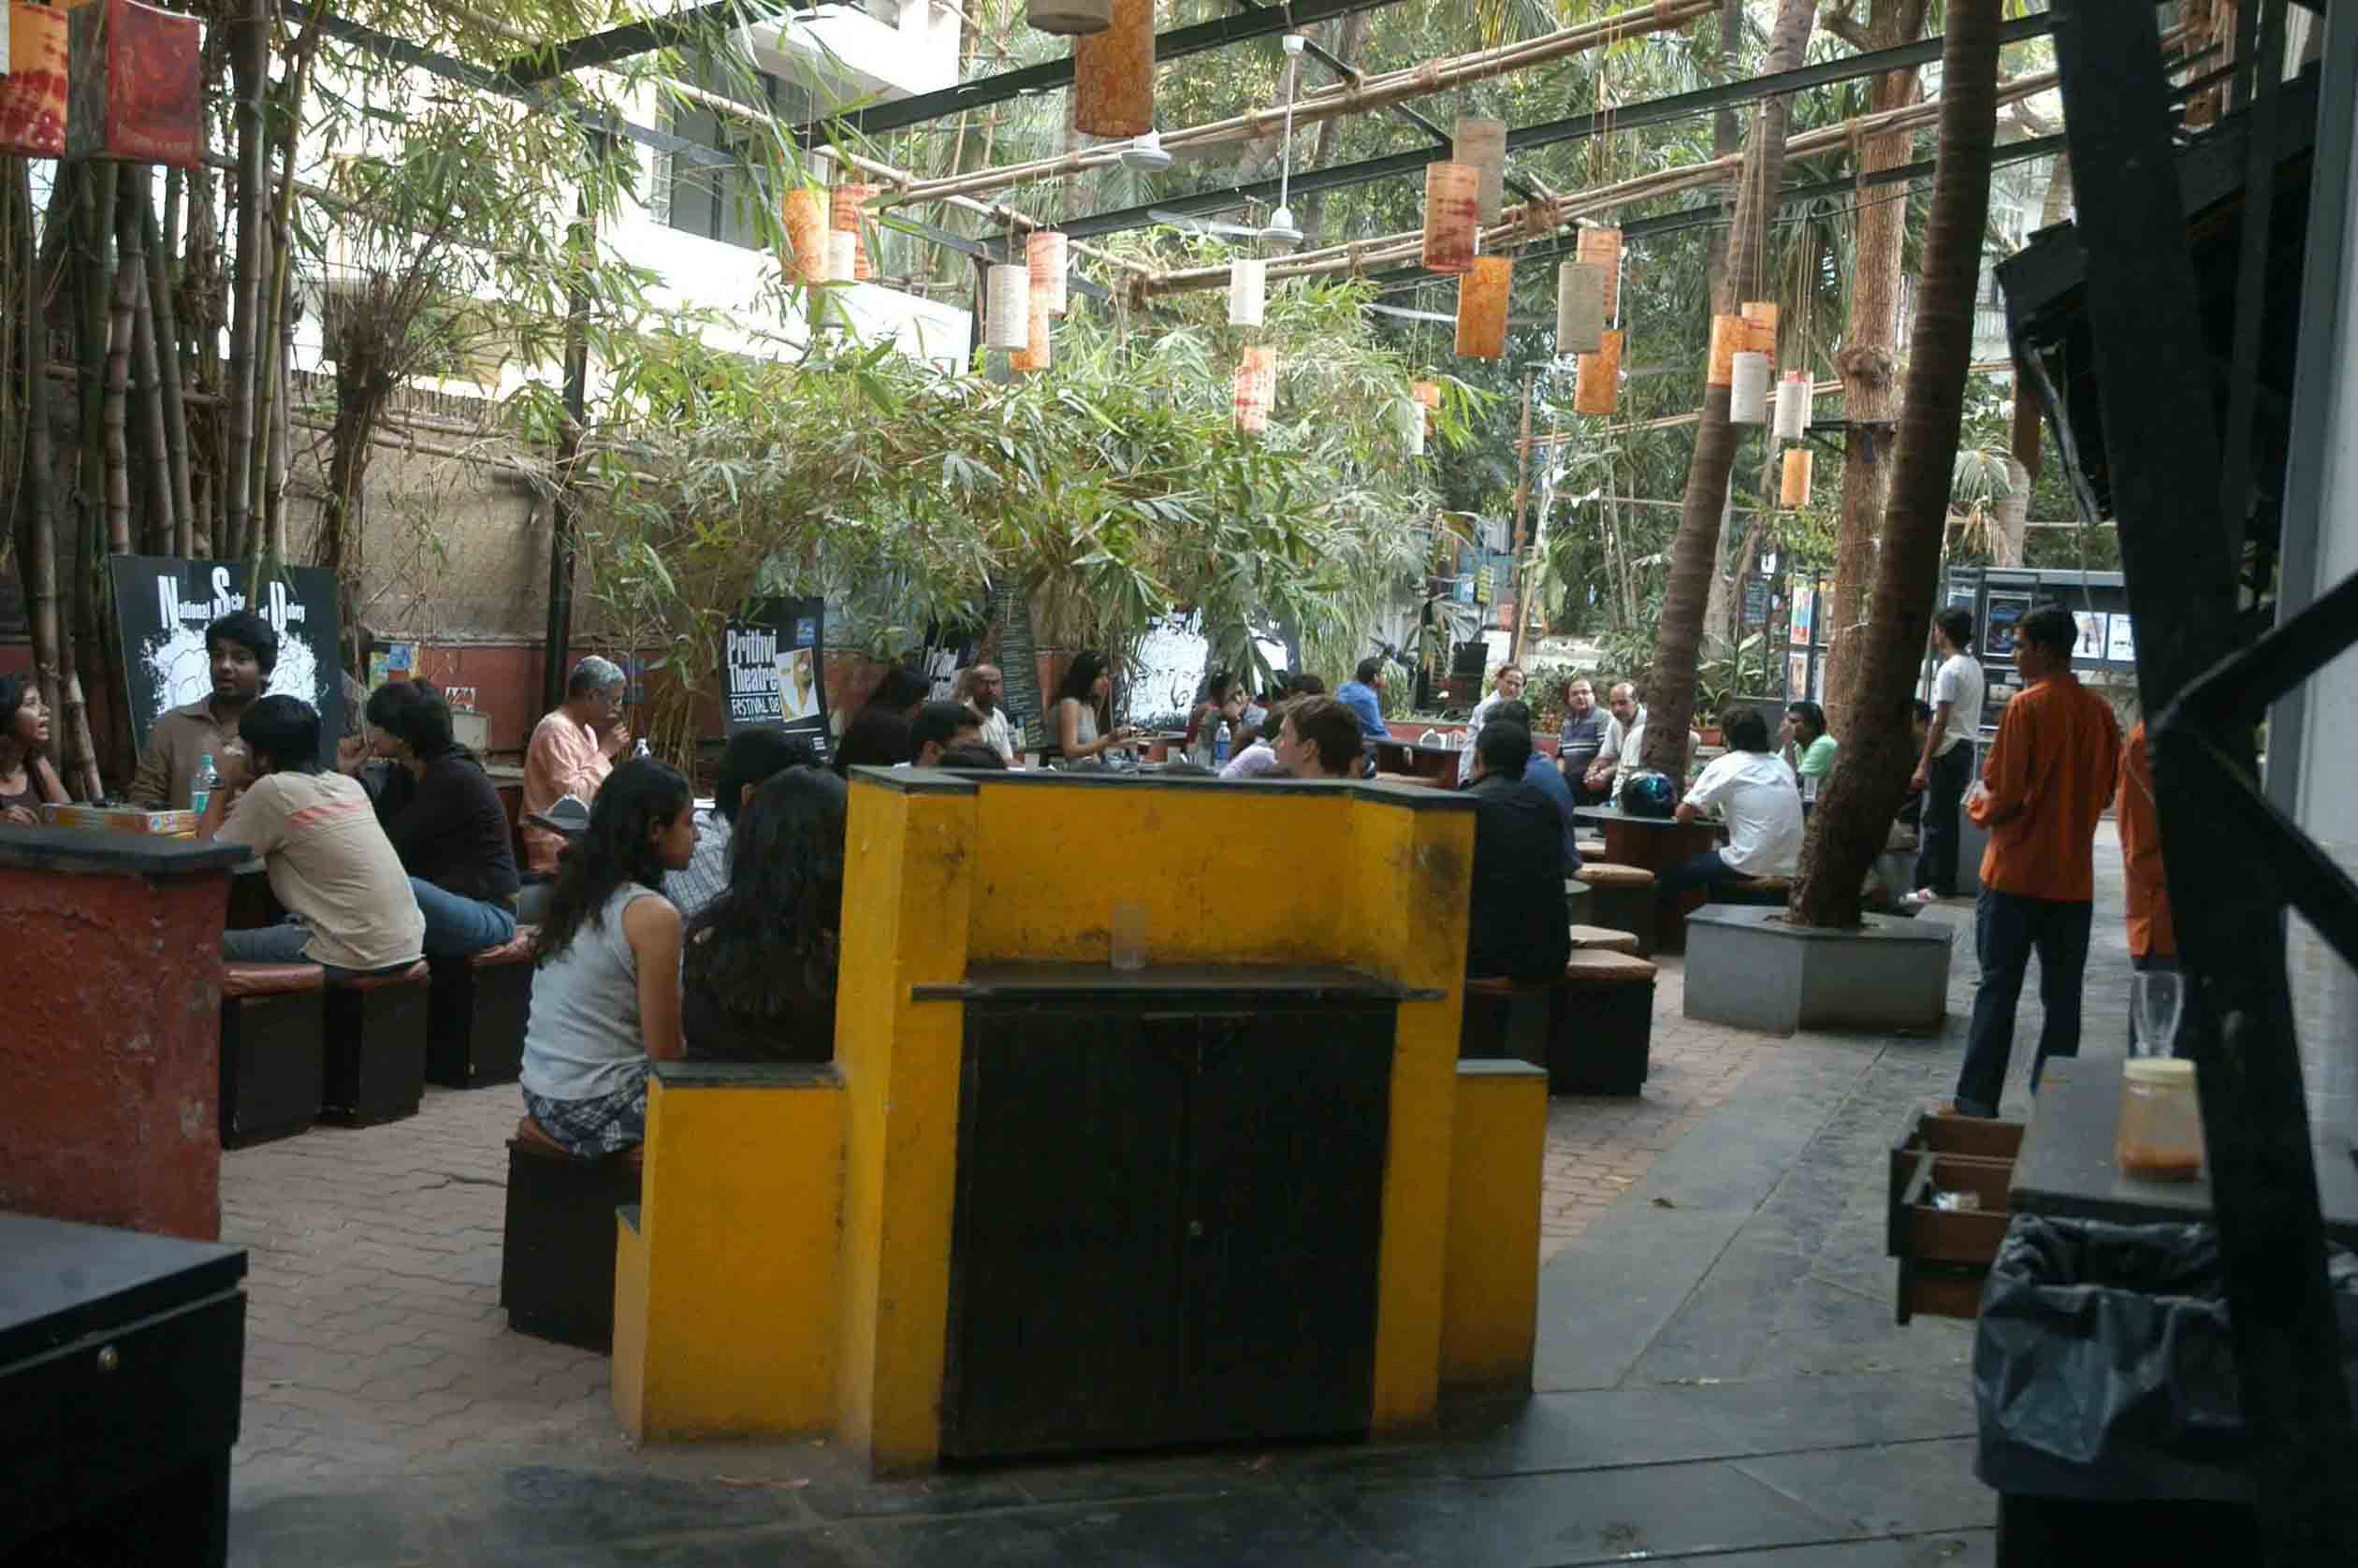 Prithvi theatre Canteen. *** Local Caption *** Prithvi theatre Canteen. Express photo by Ashish Shankar. Mumbai. 25/08/2008